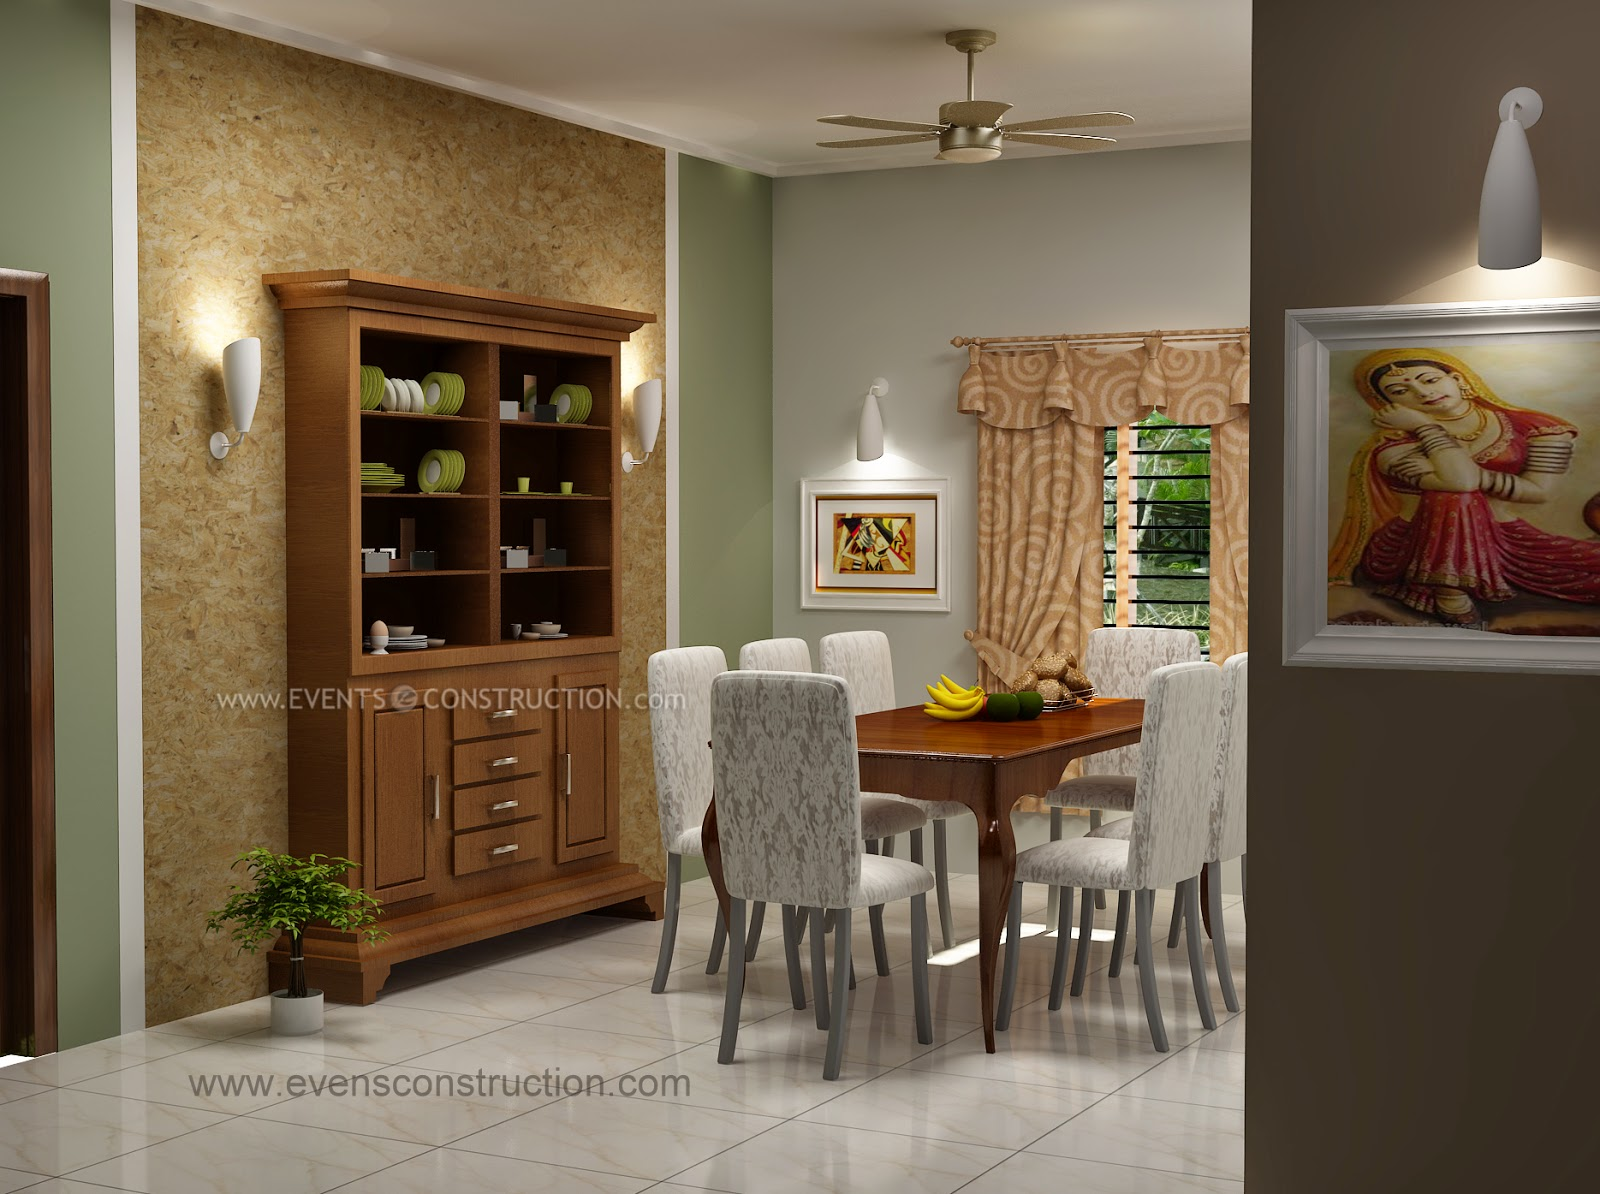 Evens Construction Pvt Ltd Dining Room Design